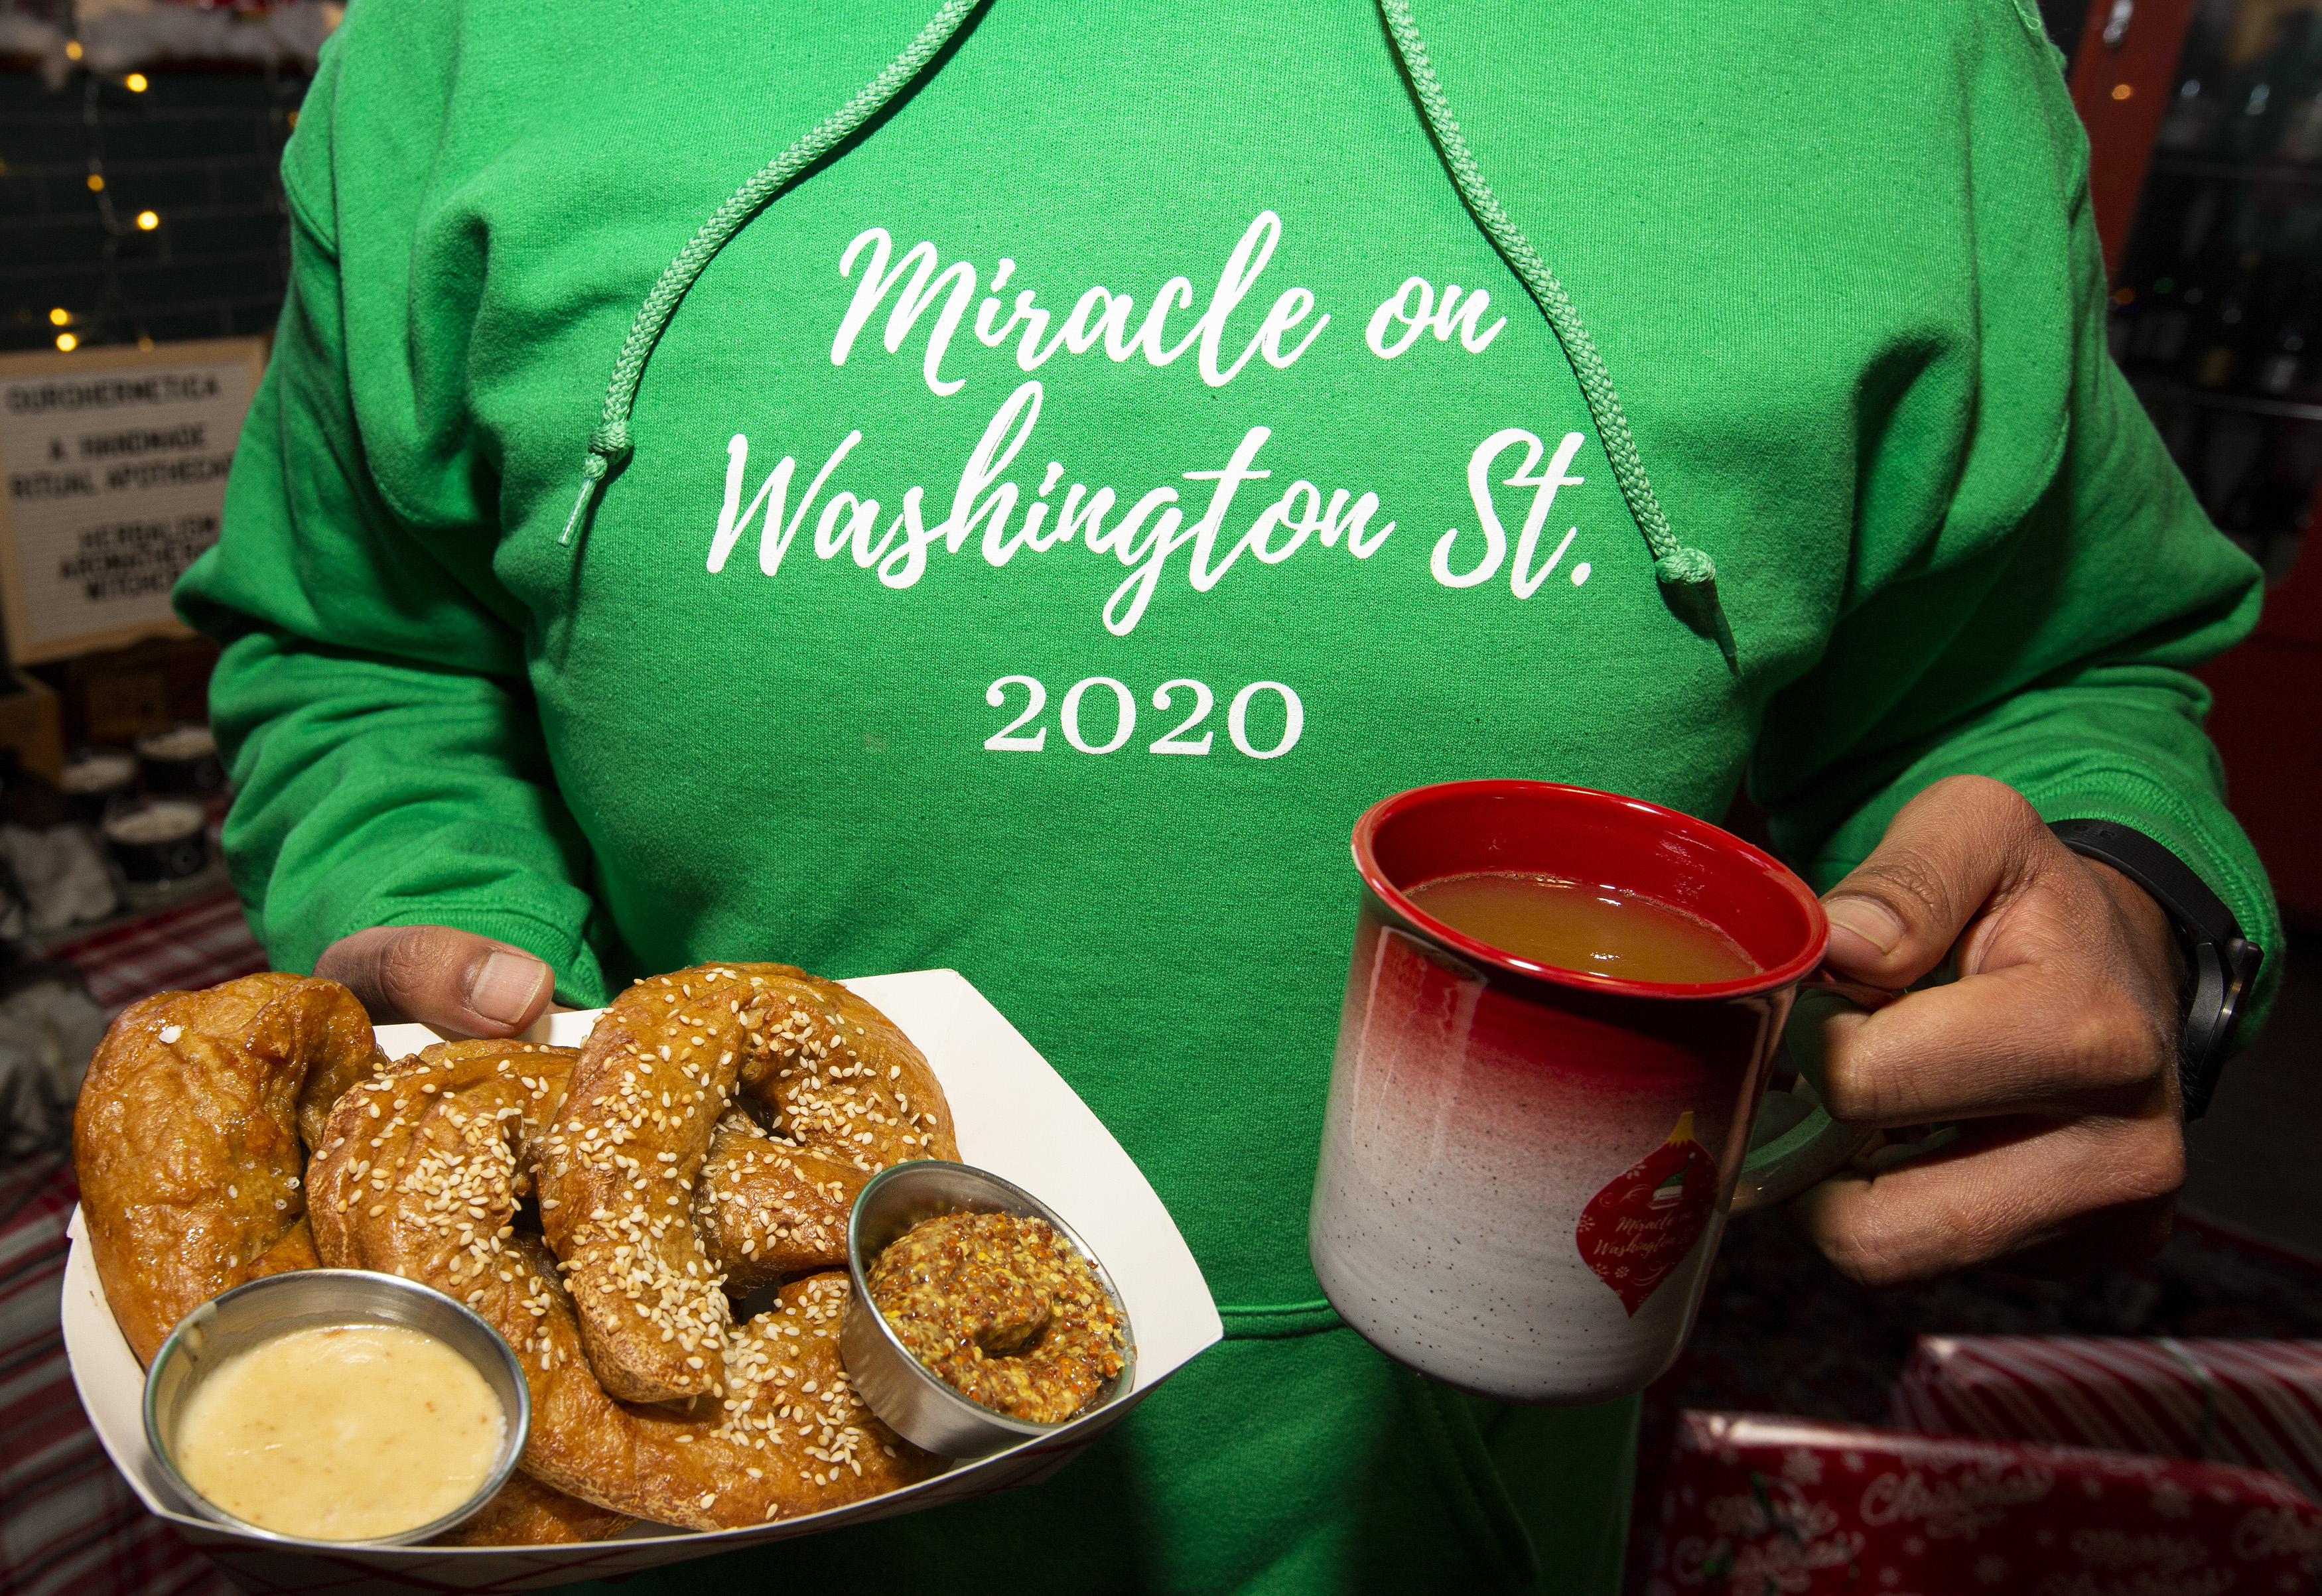 """A person in a green hoodie that reads """"Miracle on Washington St. 2020"""" holds a paper plate with a big, soft pretzel and a mug of something hot."""